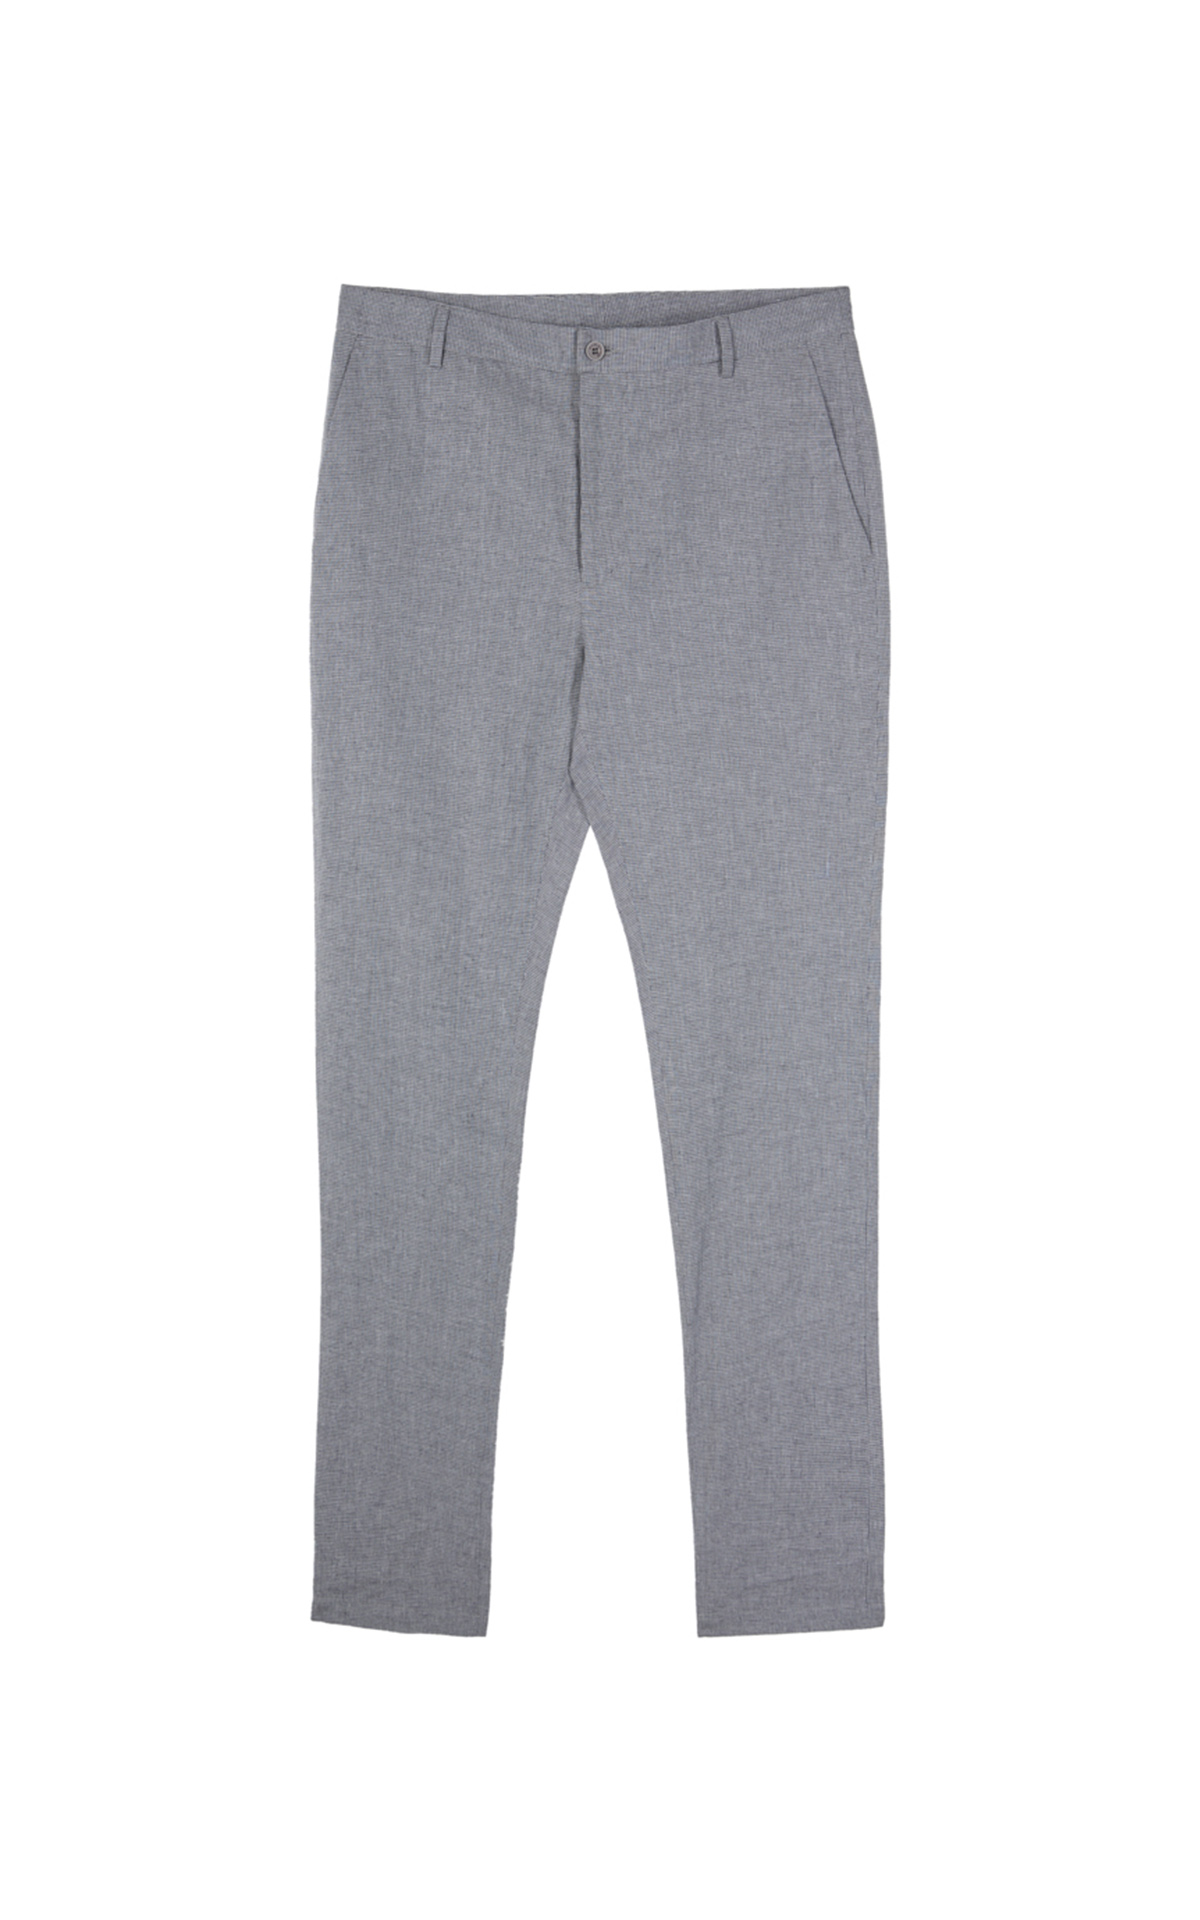 Grey linen trousers Adolfo Dominguez